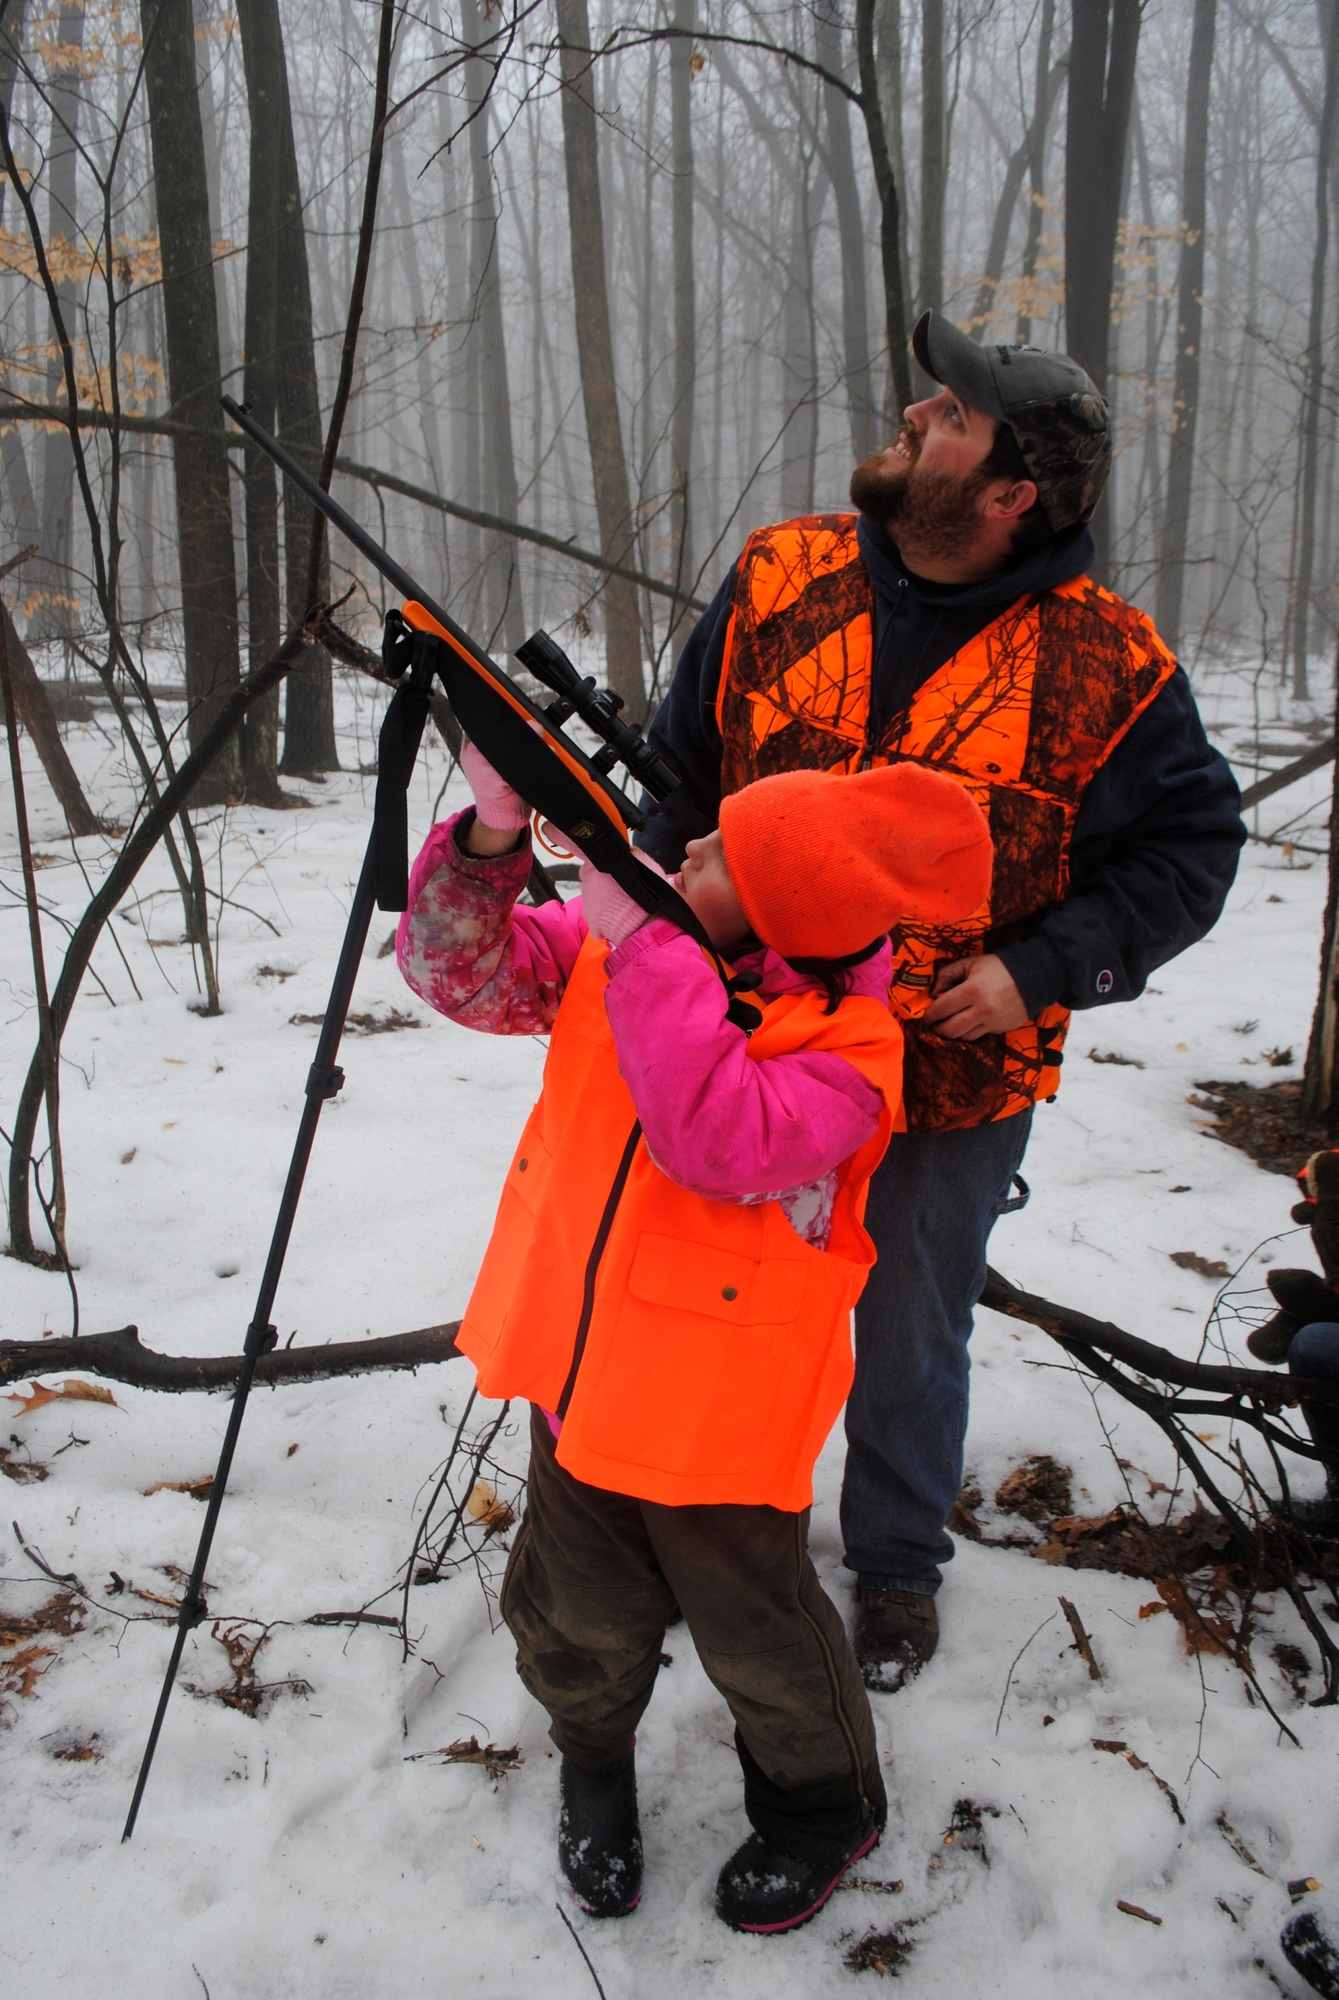 Destiny Ery takes aim at a squirrel with the help of her dad, Charles.